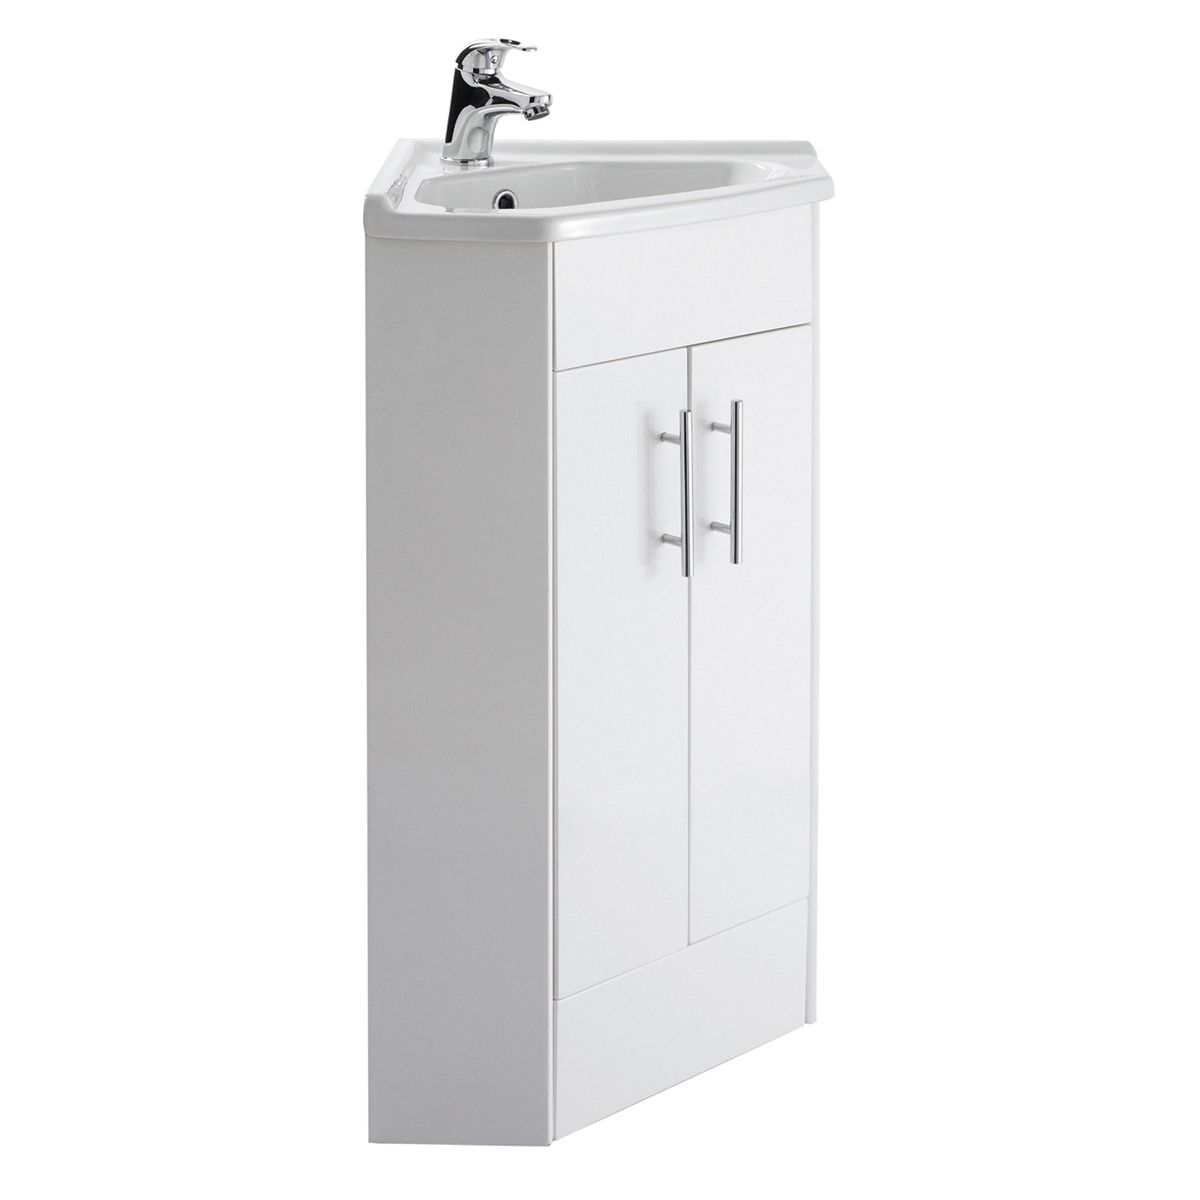 Nuie High Gloss White Corner Vanity Unit